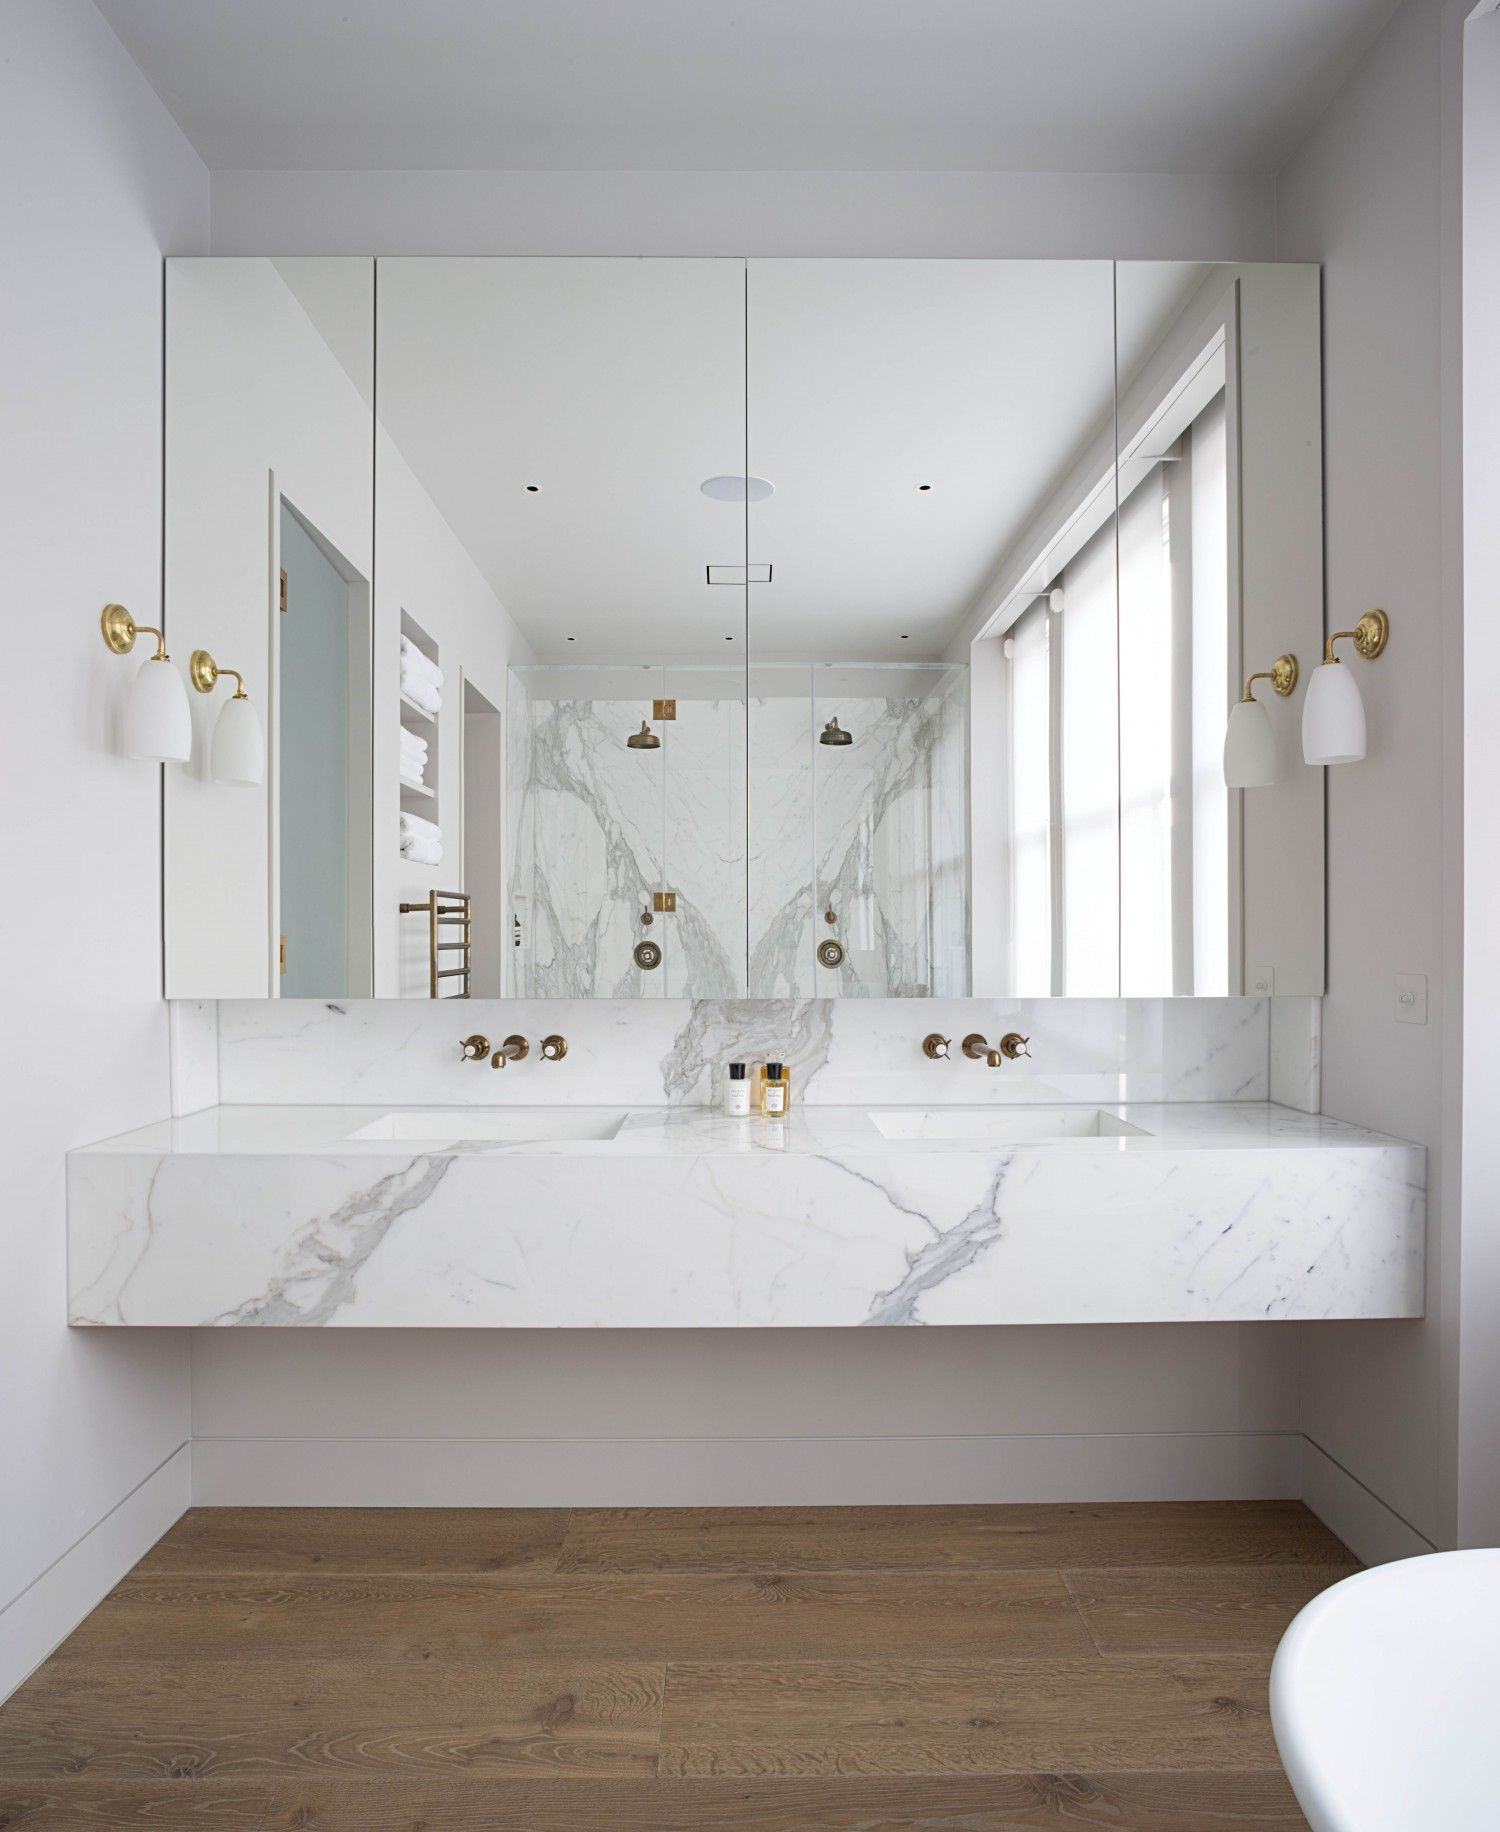 photos of remodeled bathrooms%0A Is your home in need of a bathroom remodel  Give your bathroom design a  boost with a little planning and our inspirational bathroom remodel ideas